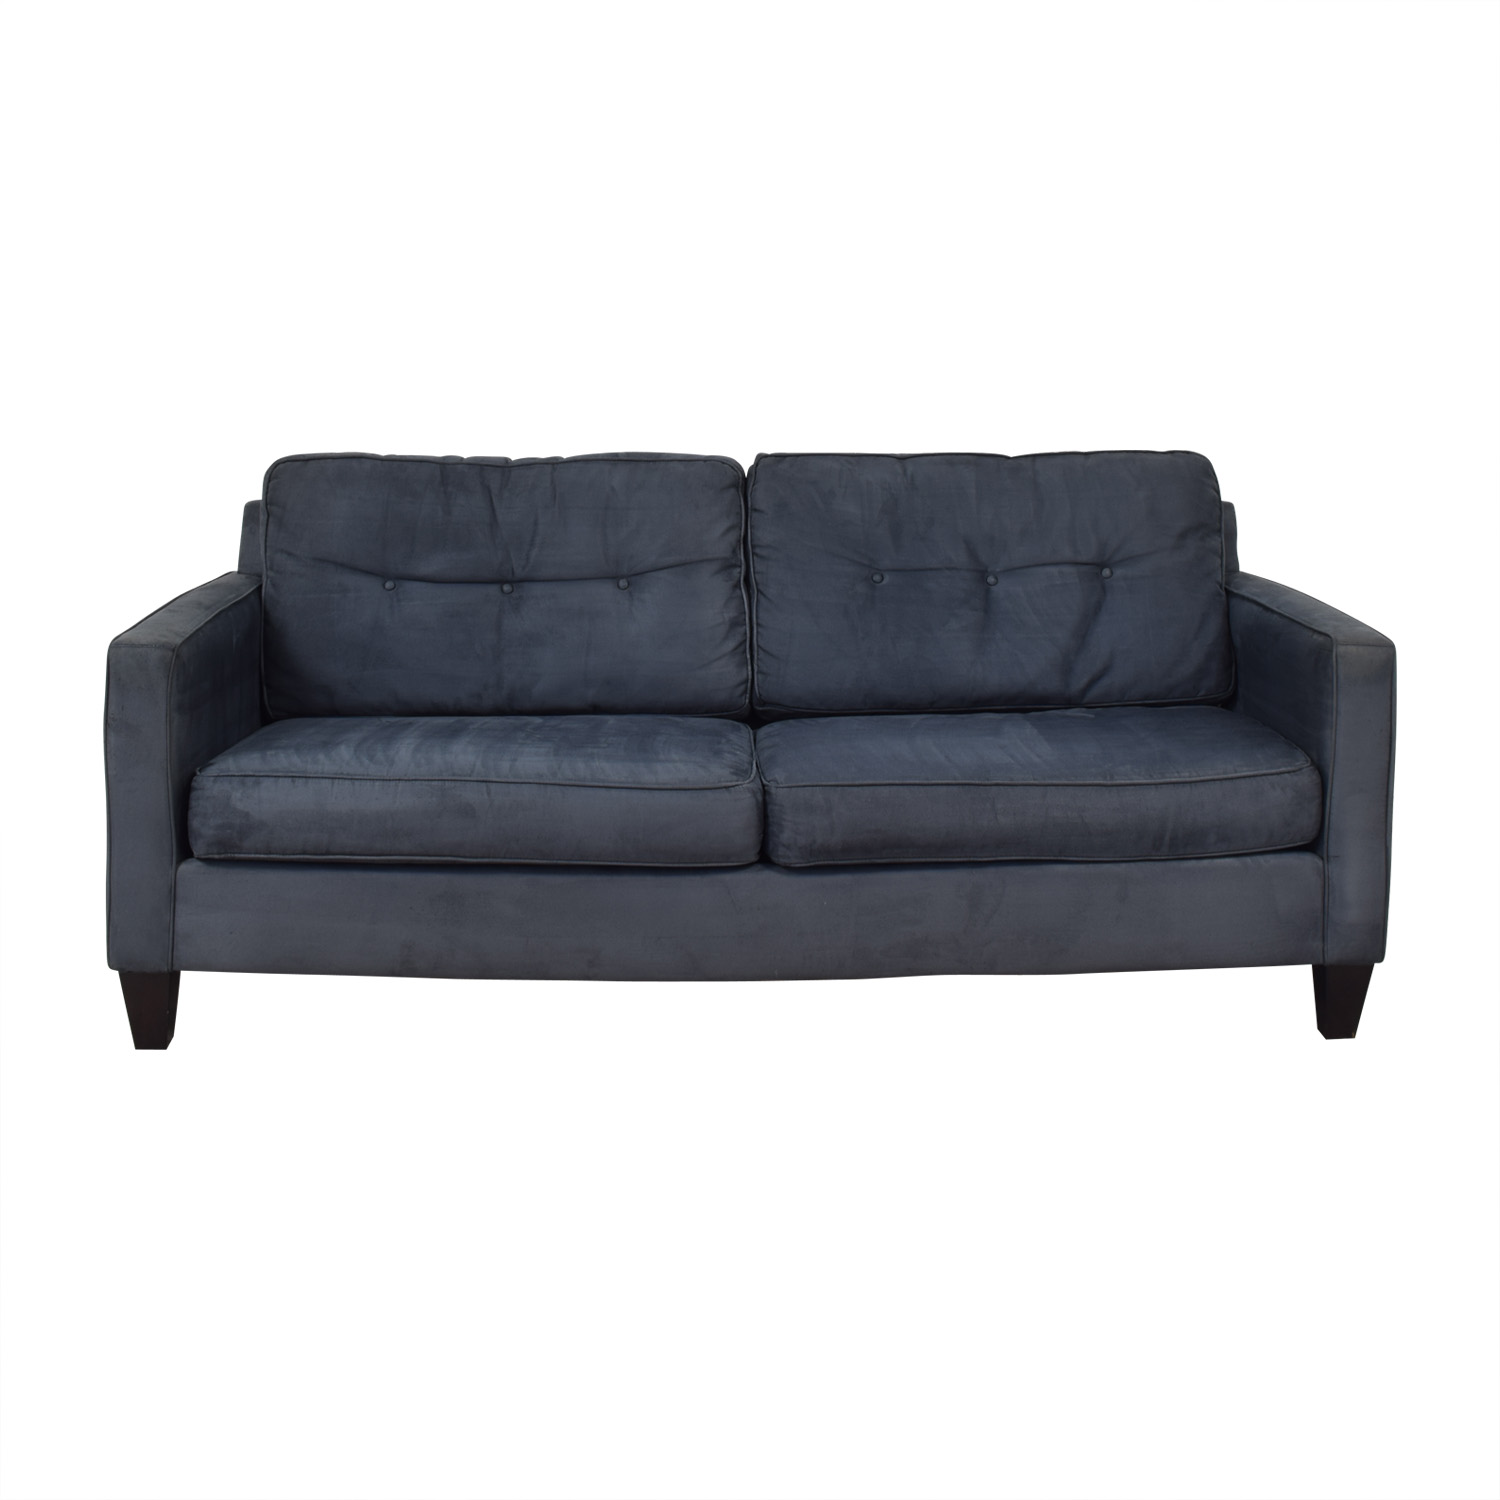 Bauhaus Furniture Bauhaus Furniture Navy Tufted Microfiber Sofa second hand